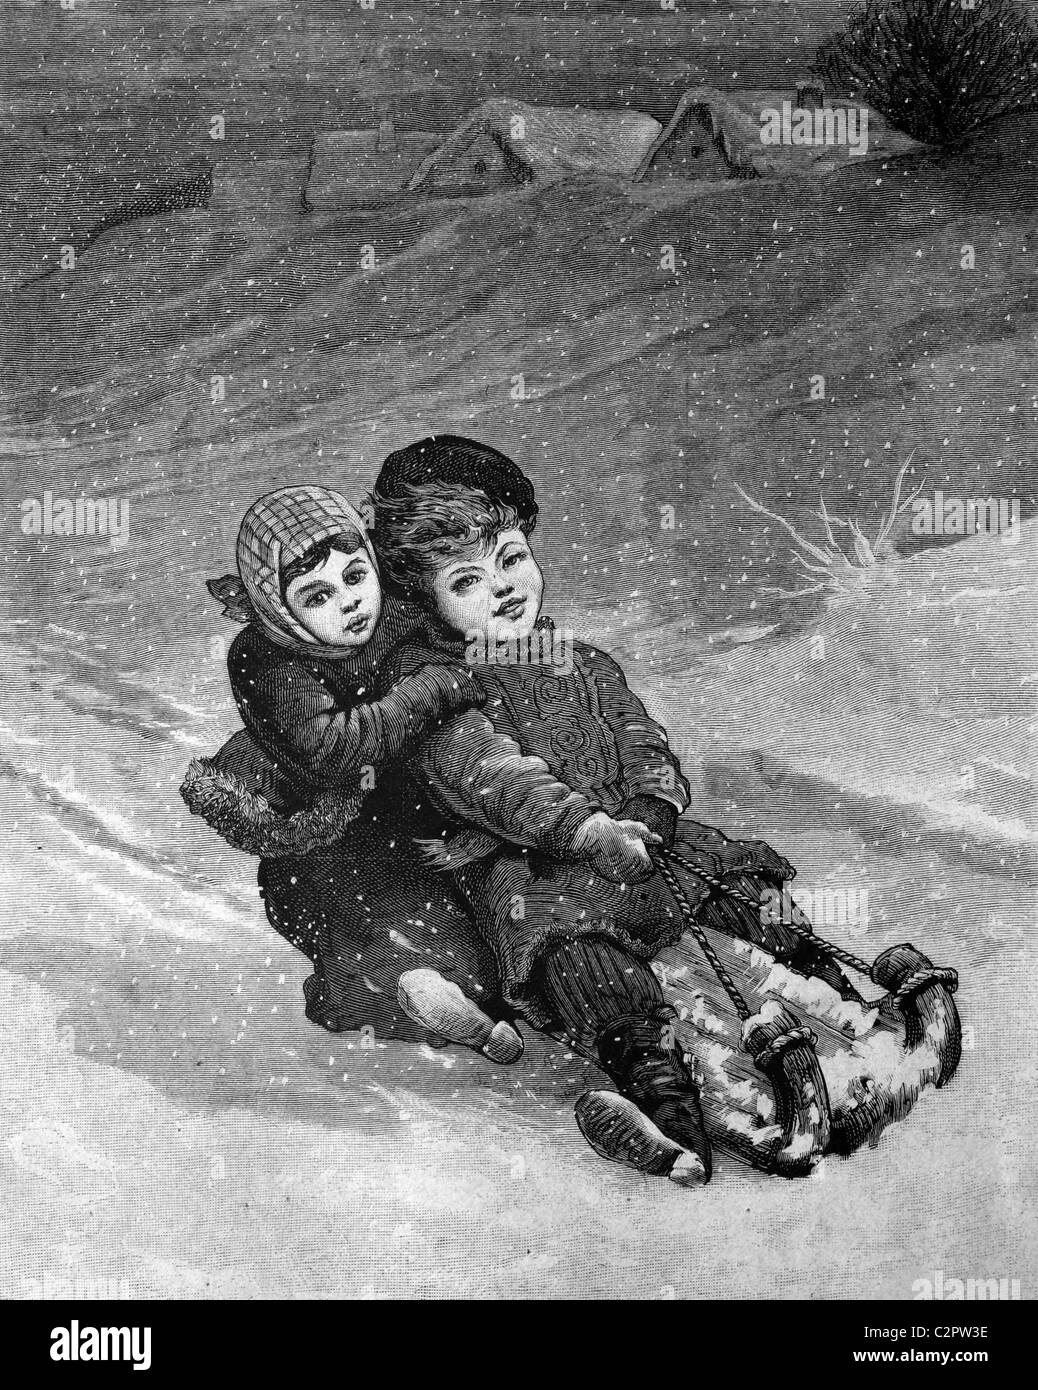 Children tobogganing, historical illustration, about 1886 - Stock Image